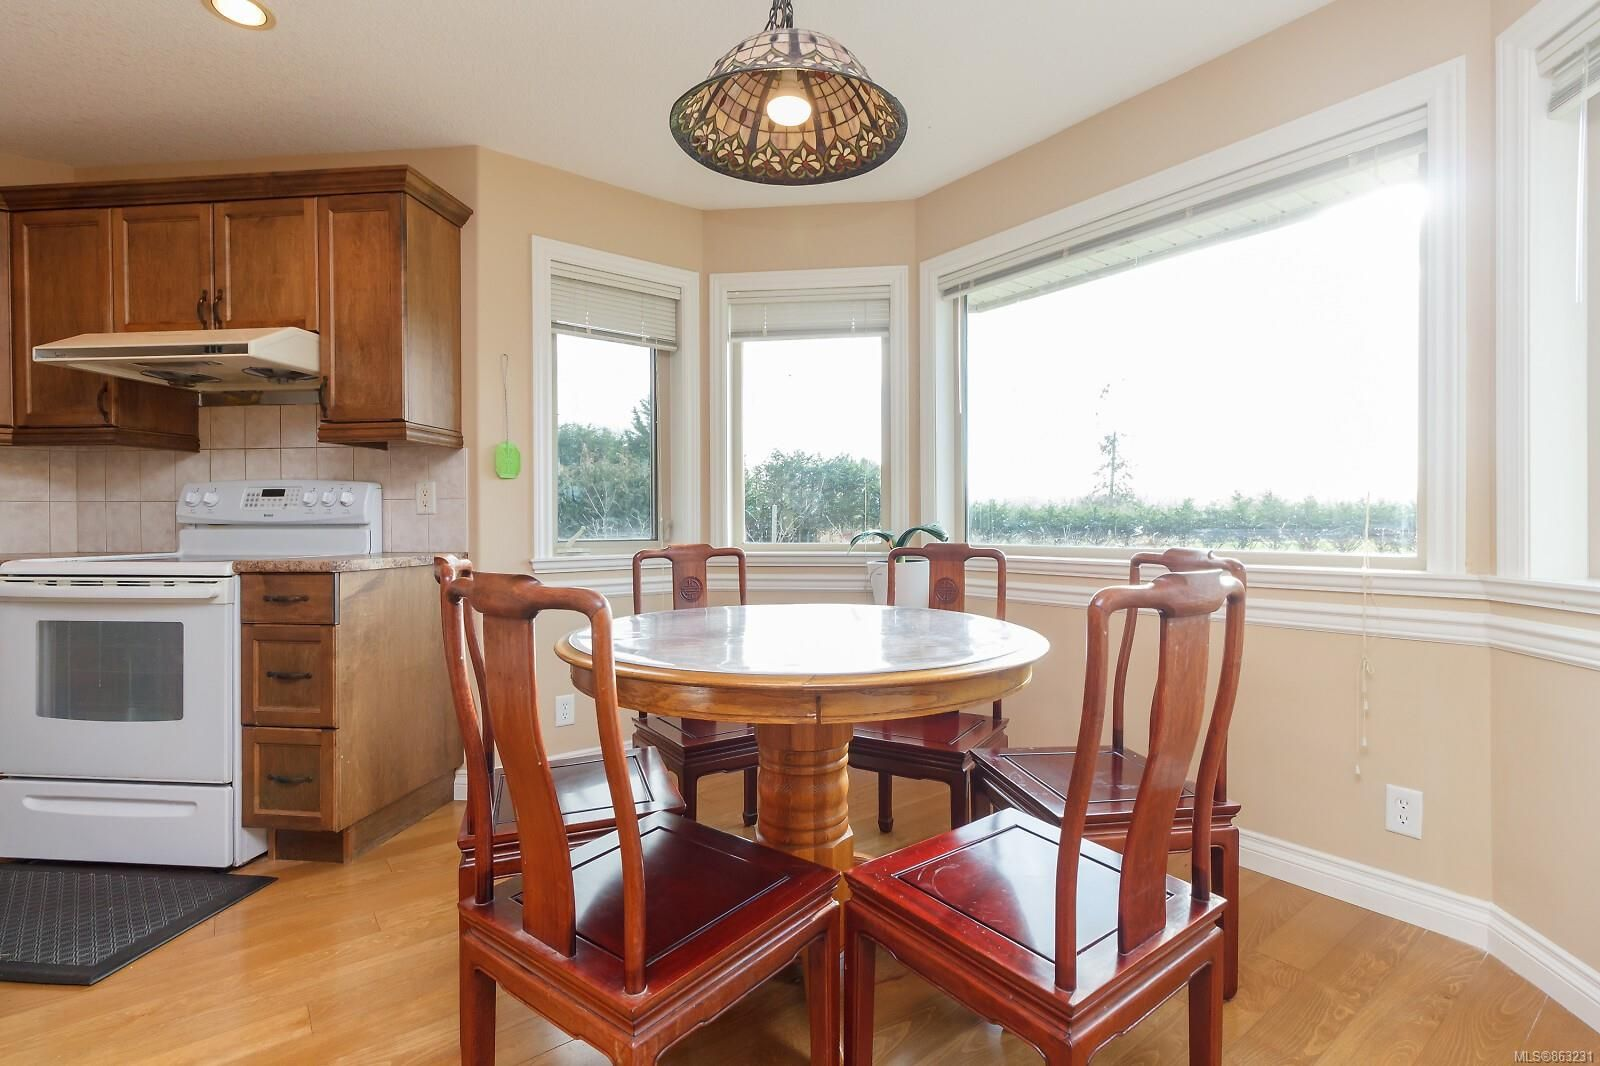 Photo 10: Photos: 1230 Hodges Rd in : PQ French Creek House for sale (Parksville/Qualicum)  : MLS®# 863231